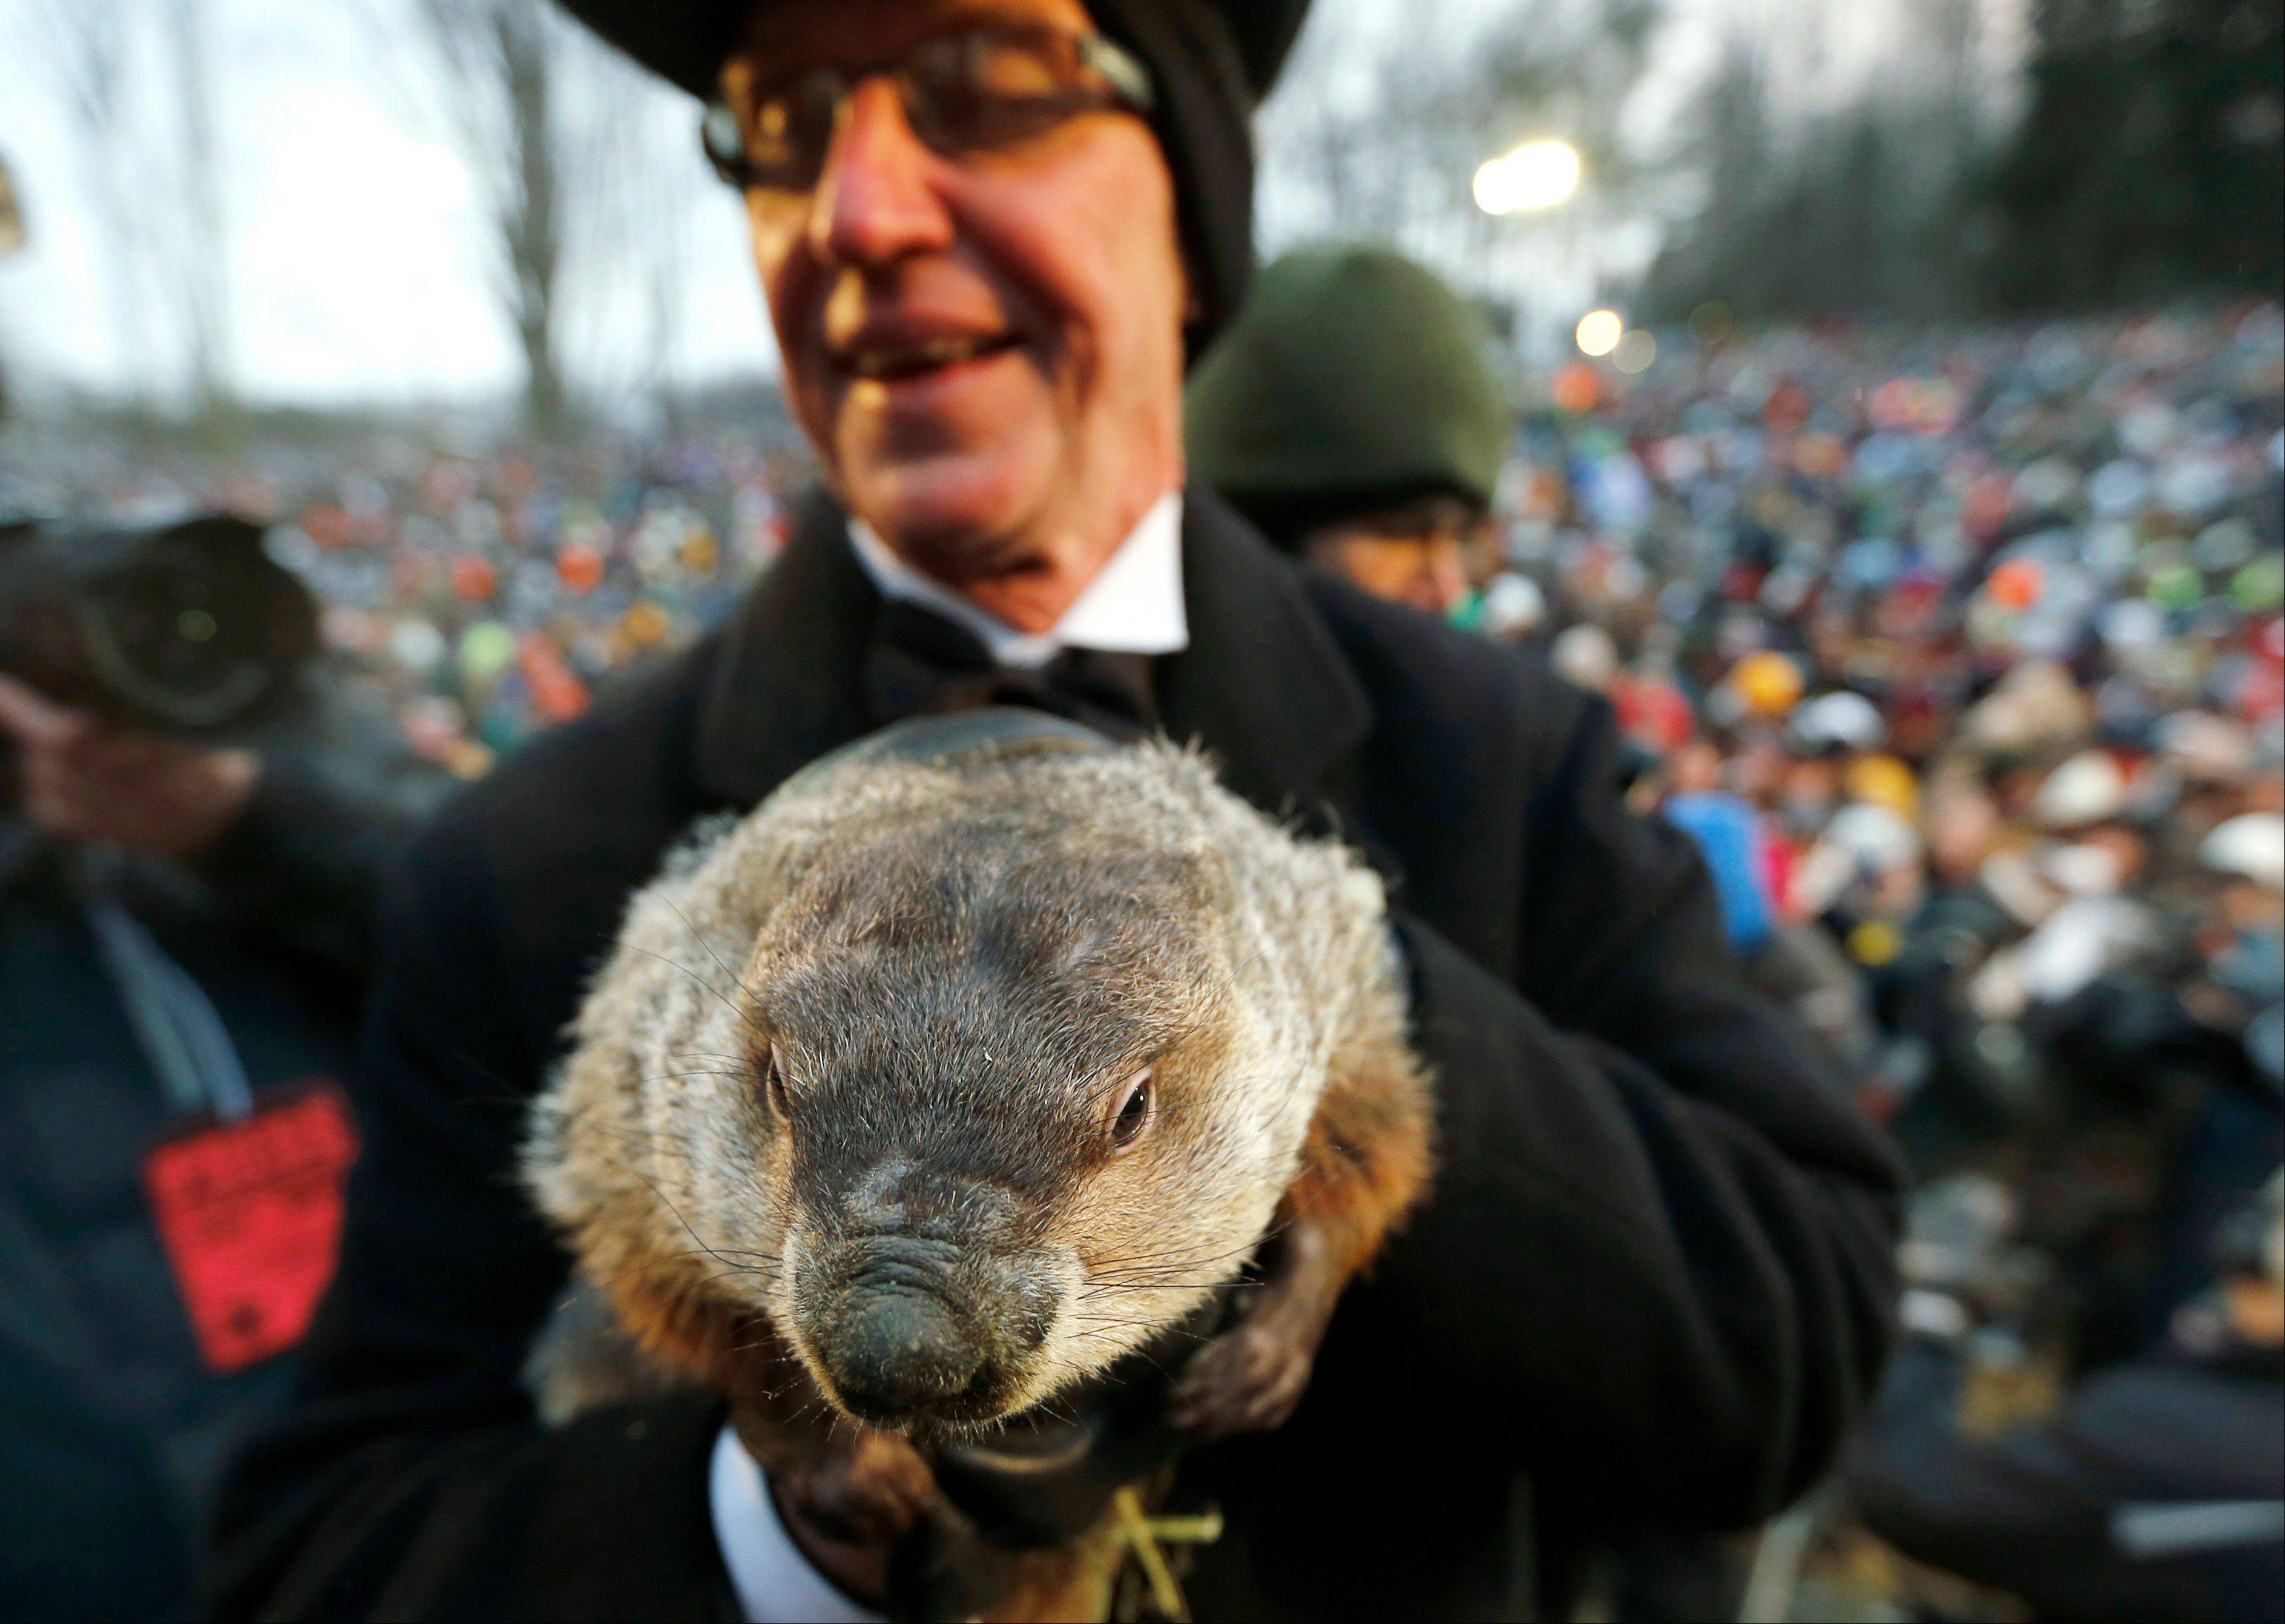 Groundhog Club co-handler Ron Ploucha holds the weather predicting groundhog, Punxsutawney Phil, after the club said Phil did not see his shadow and there will be an early spring, on Groundhog Day, in Punxsutawney, Pa.